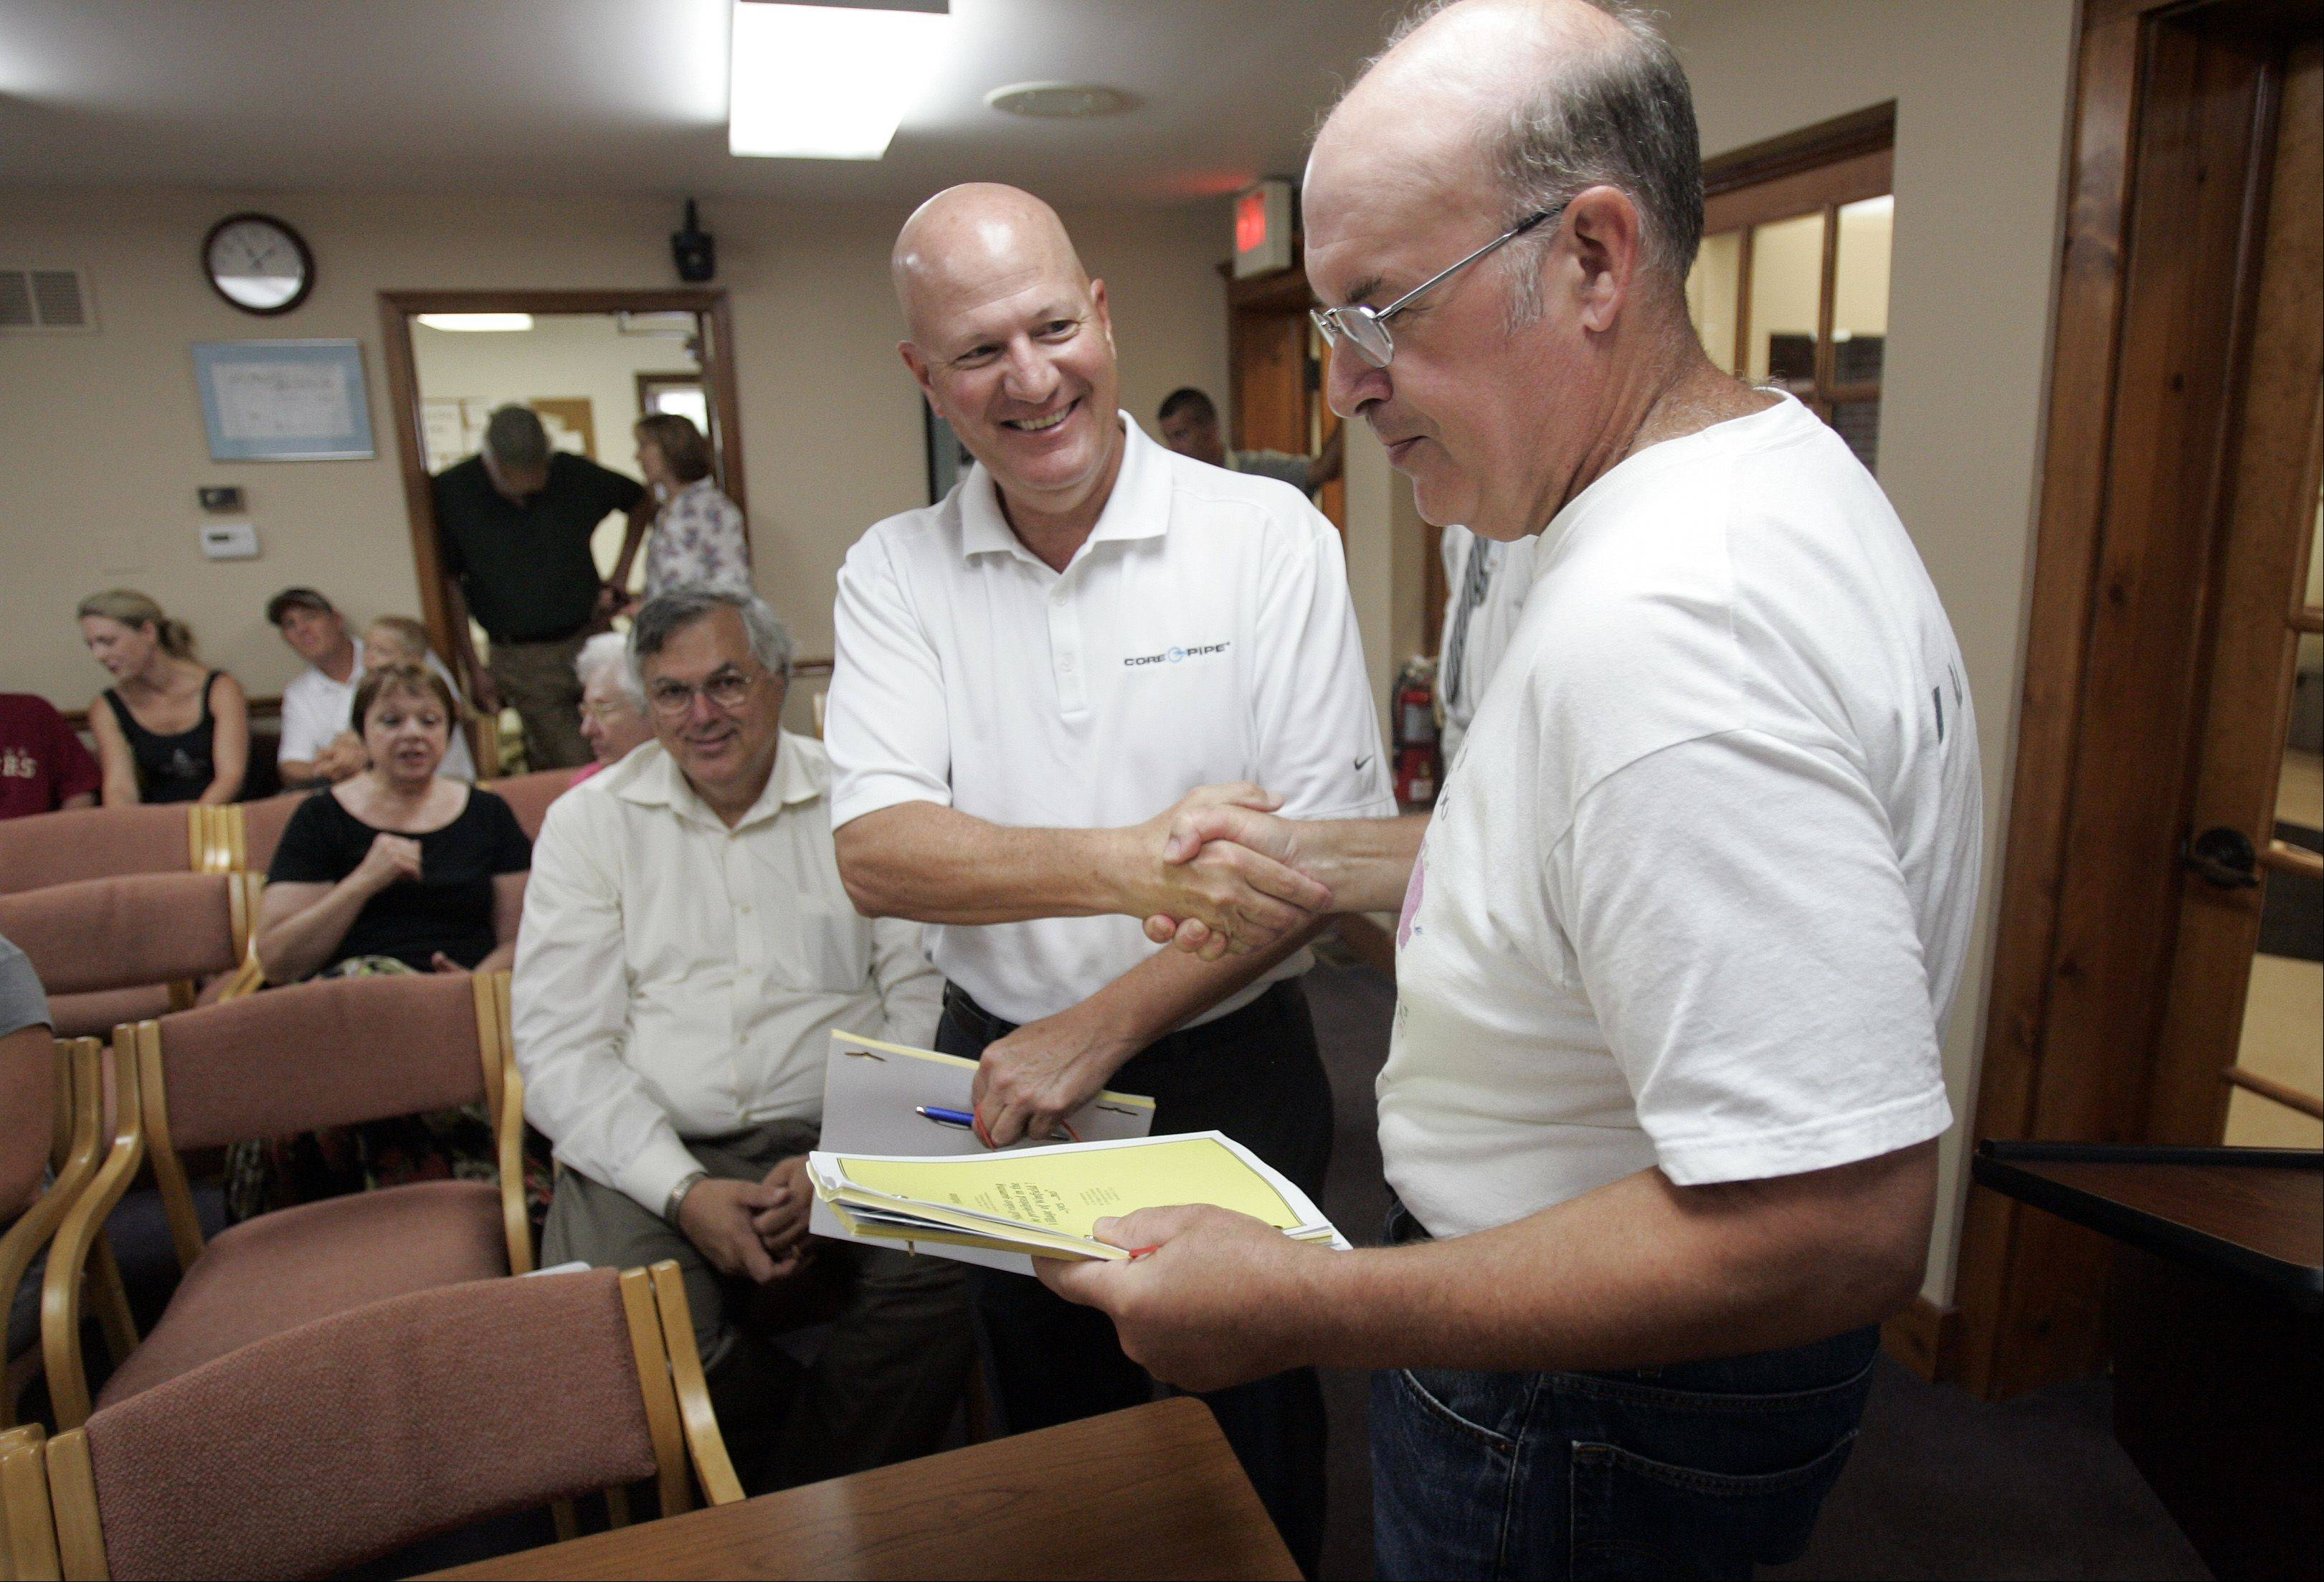 Winfield residents Steve Romanelli, left, and Harold Besch congratulate each other after submitting petitions calling for a referendum in November on video gambling and keeping the local police department intact.